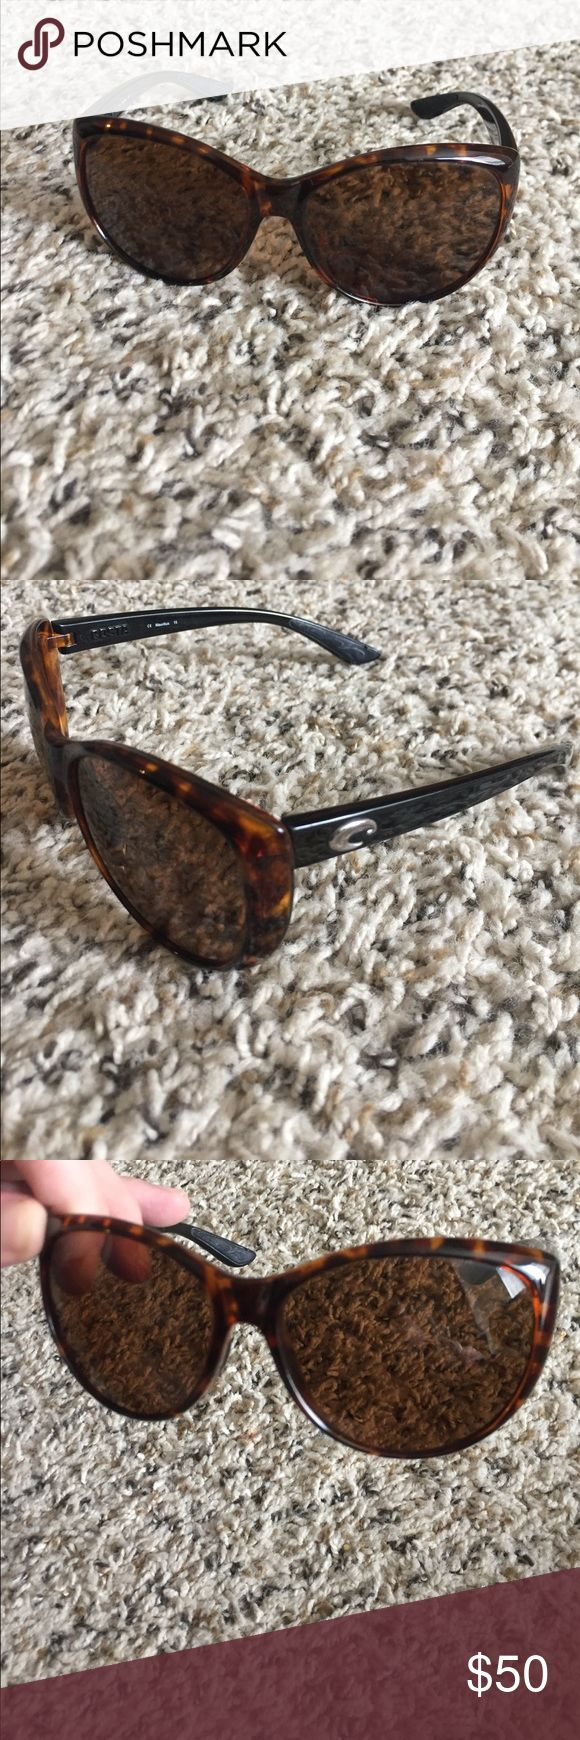 Genuine Costa Del Mar sunglasses Super cute tortoise shell La Mar Costa sunglasses. In near perfect condition. Tiny, minor scratches on lenses, but nothing major. Great pair of sunglasses, just don't wear them much! Costa Del Mar Accessories Sunglasses